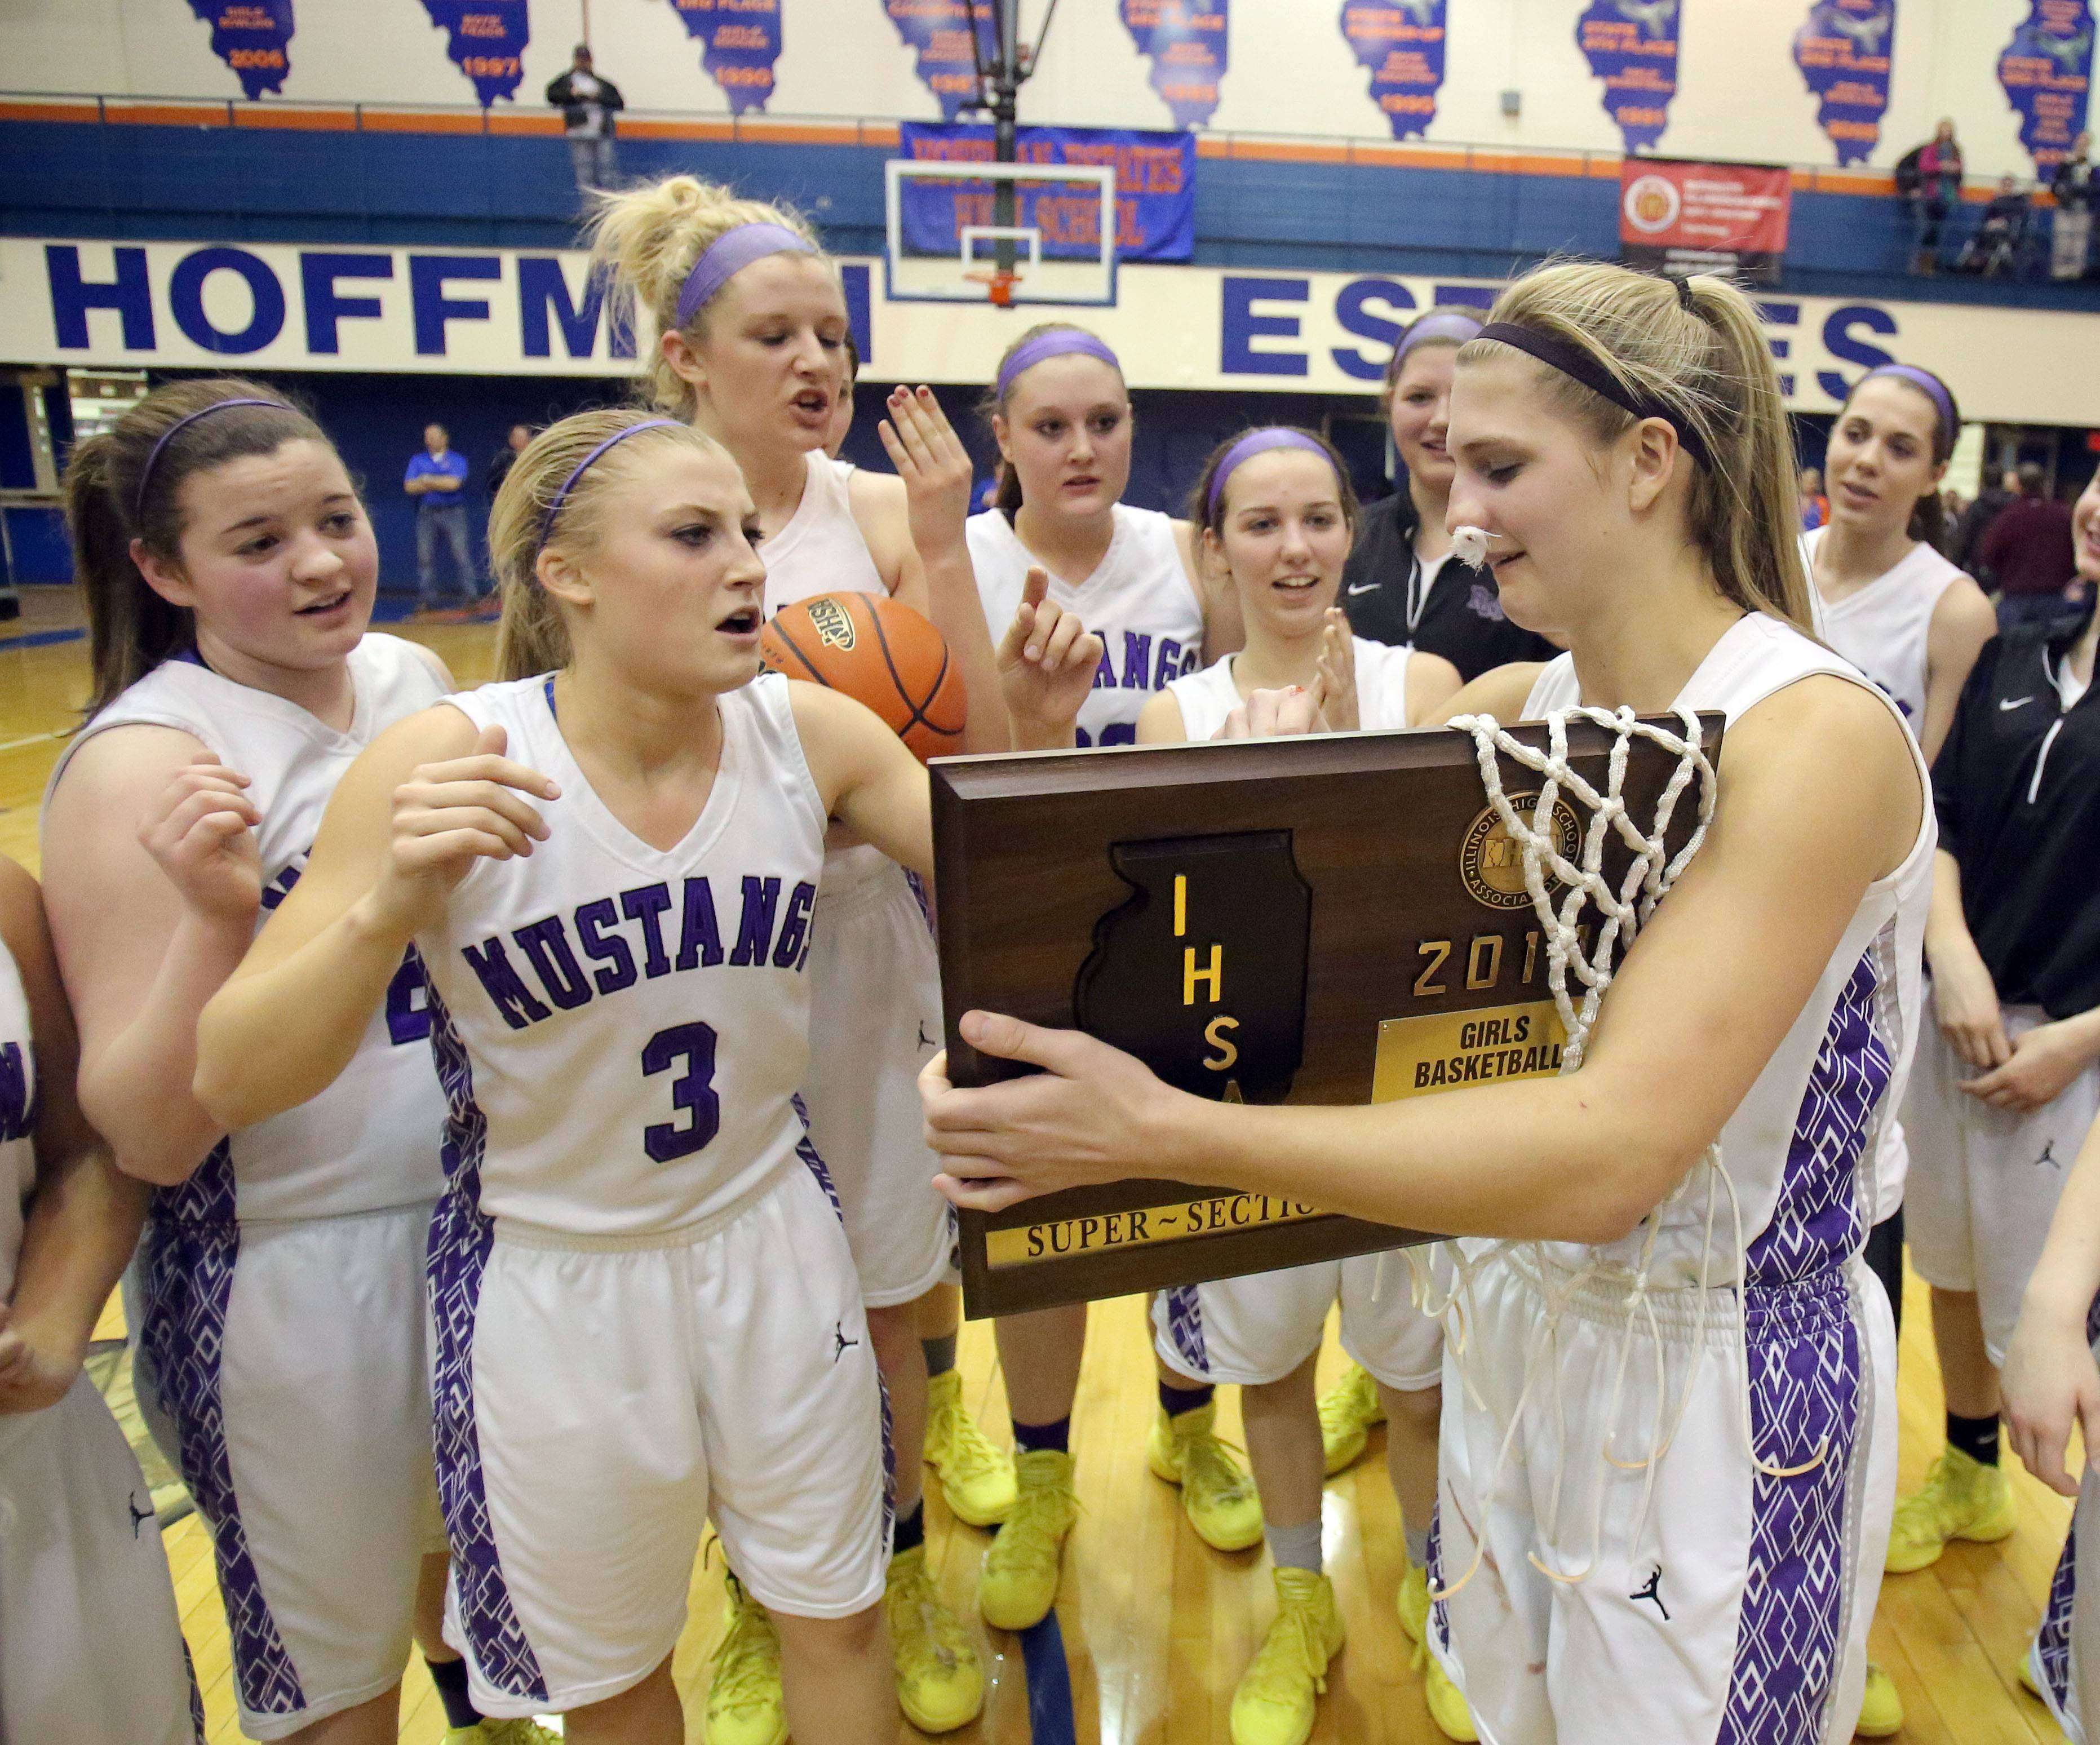 Rolling Meadows players gather around Alexis Glasgow as she receives the supersectional trophy following the Mustangs' 60-43 victory over New Trier in Class 4A supersectional play at Hoffman Estates on Monday.